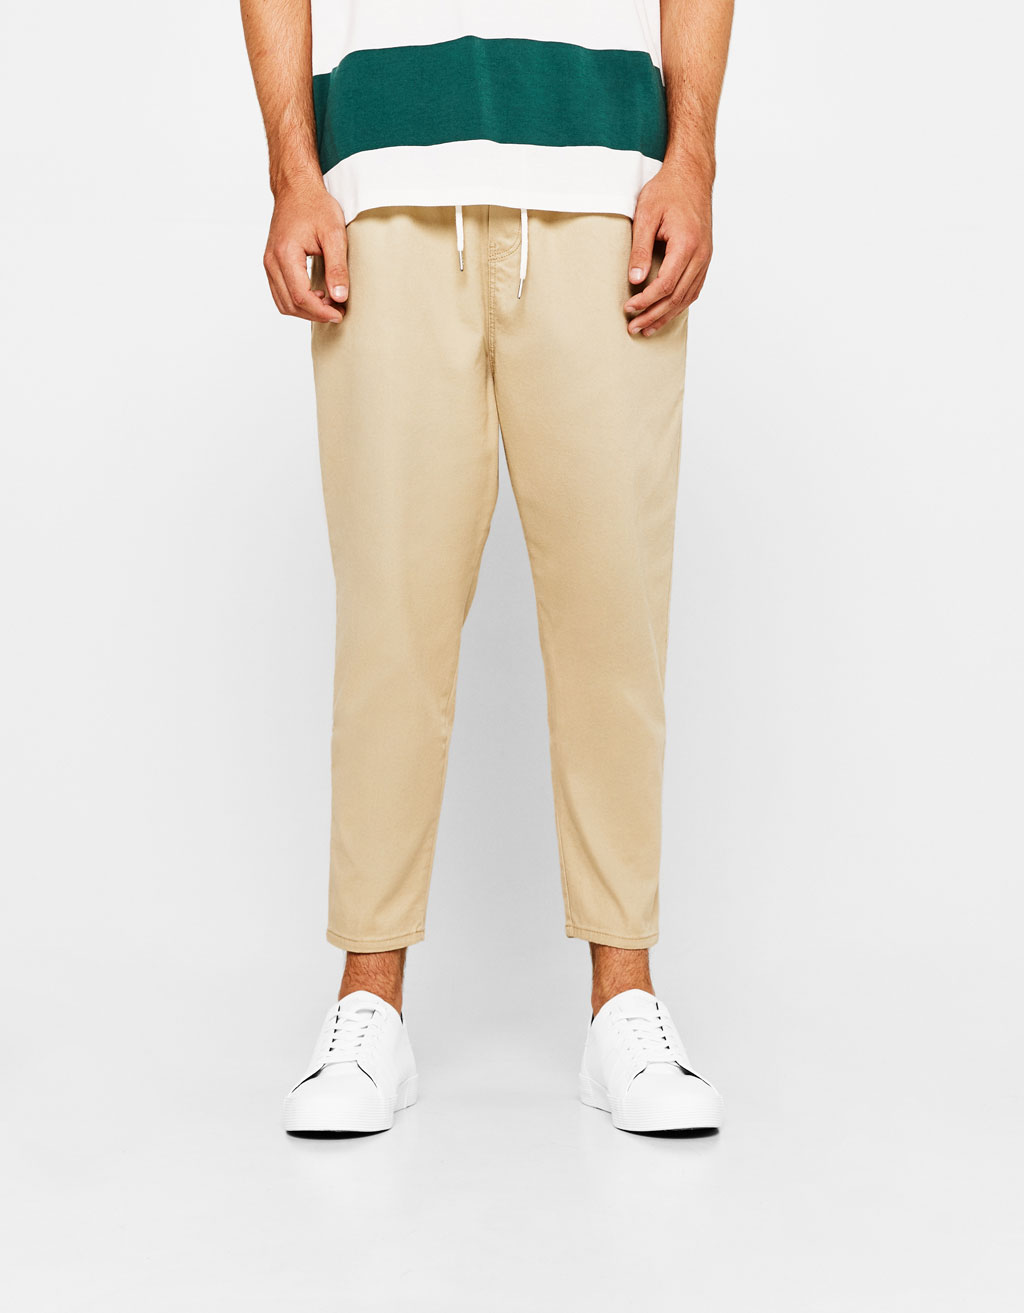 Baggy fit jogging trousers